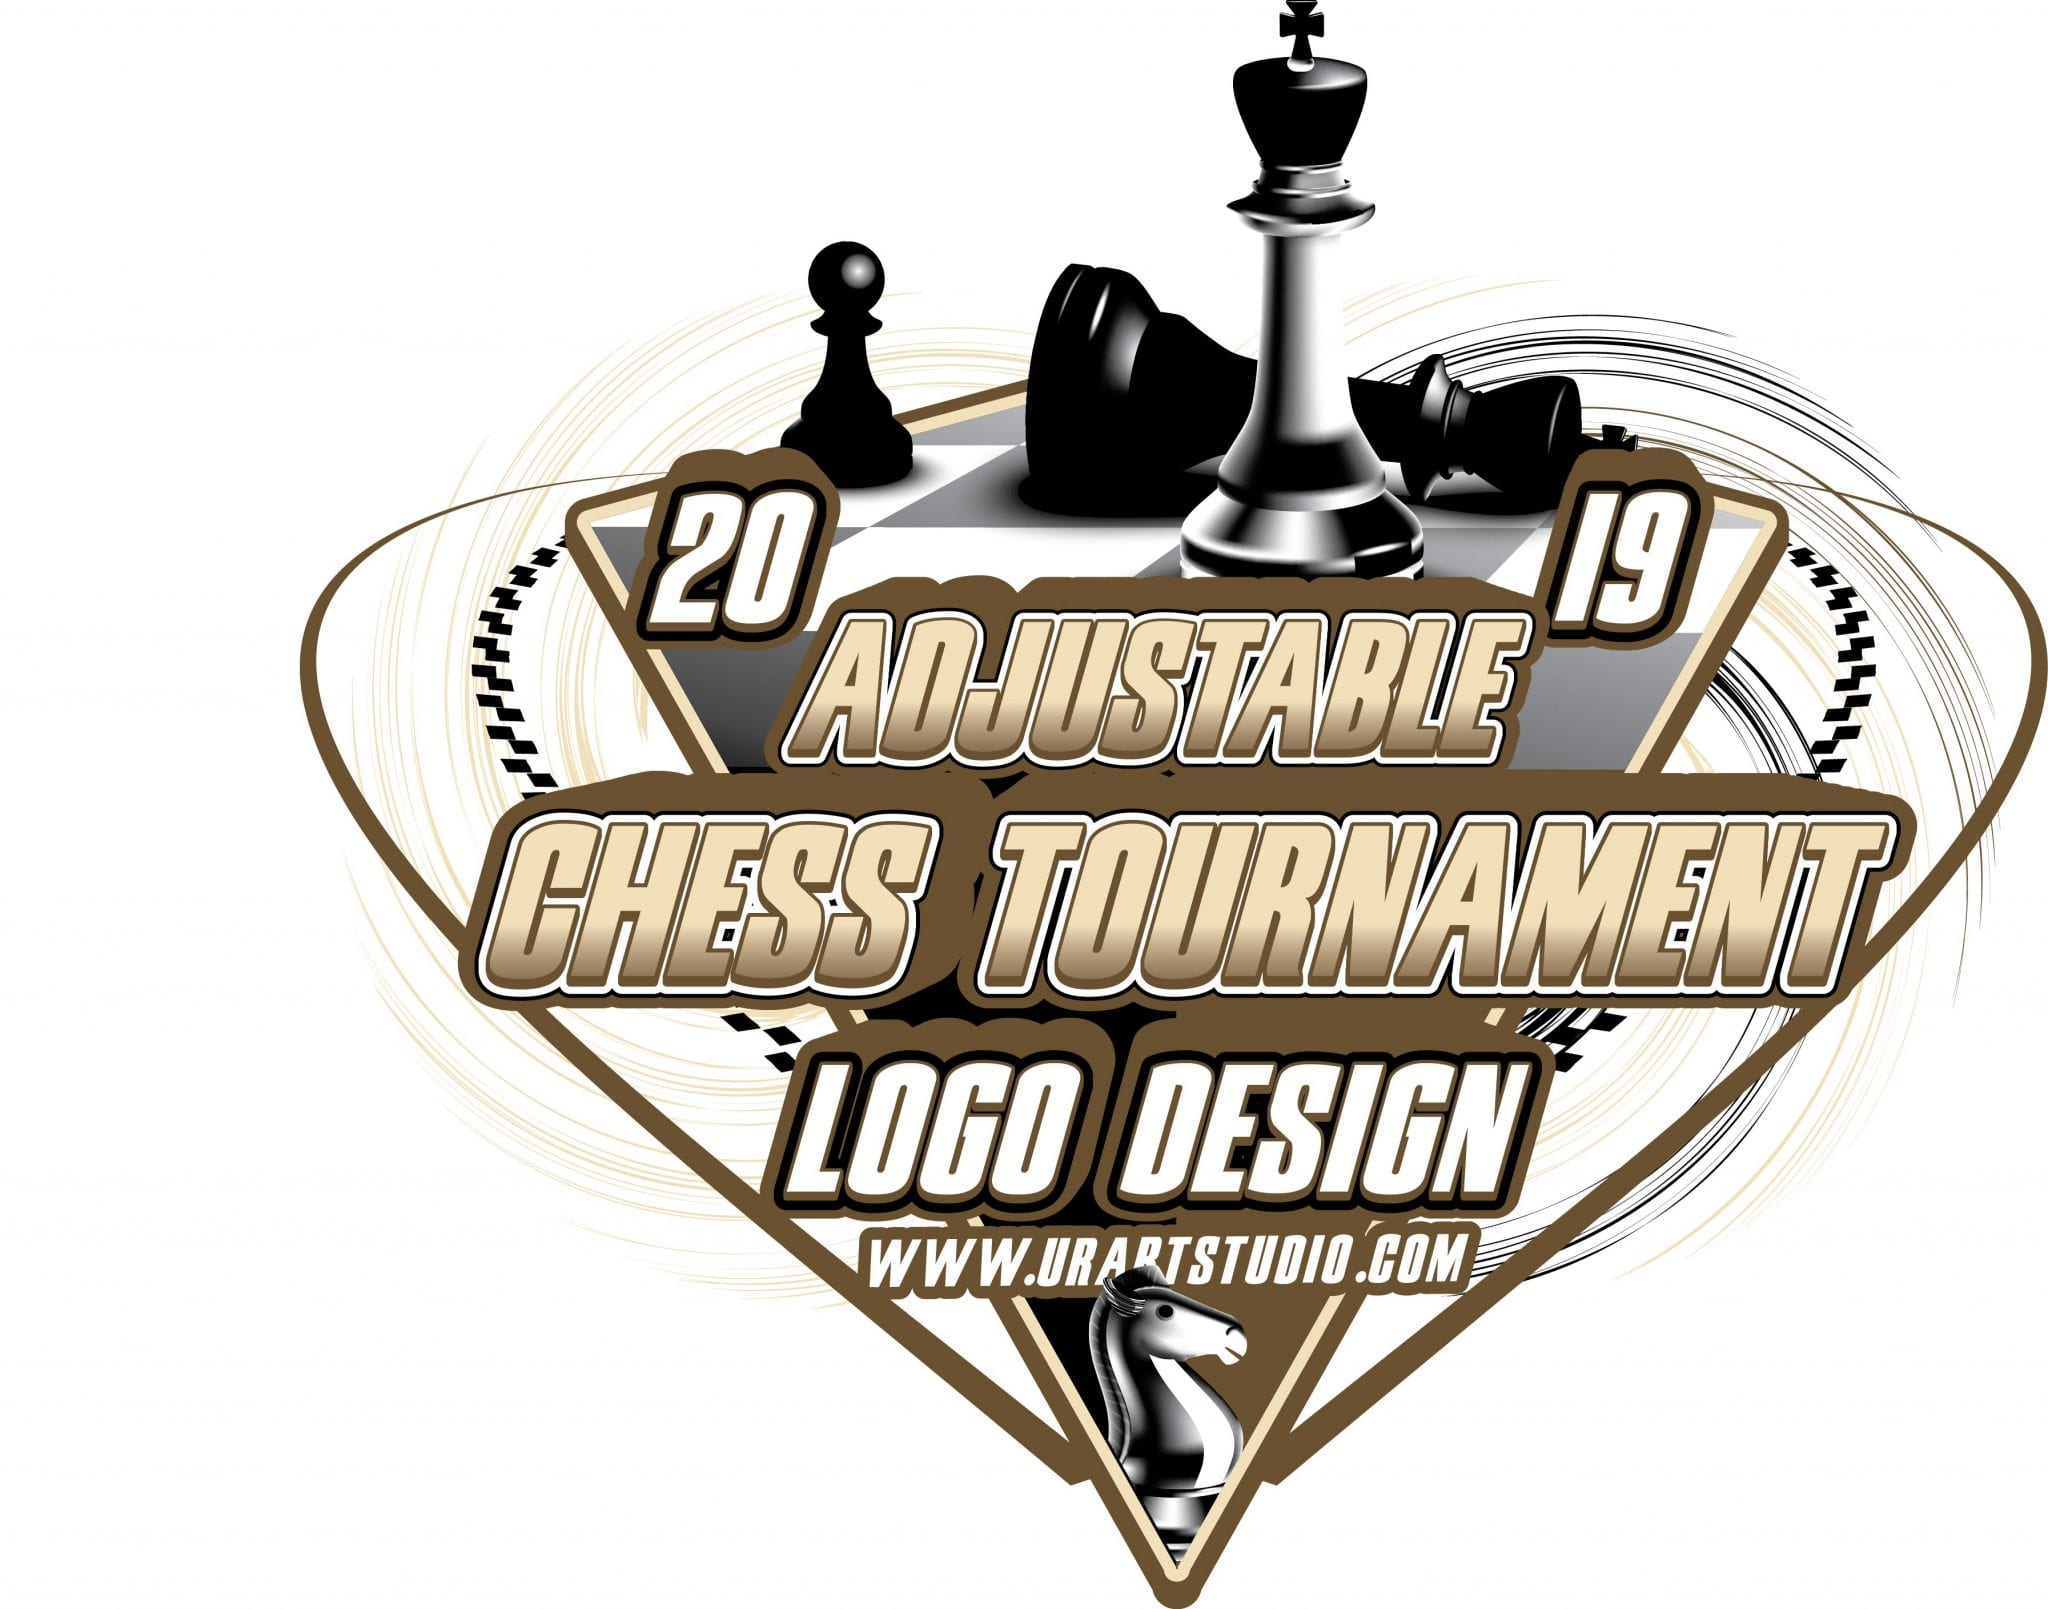 Chess Tournament Adjustable Vector Logo Design For Tshirt